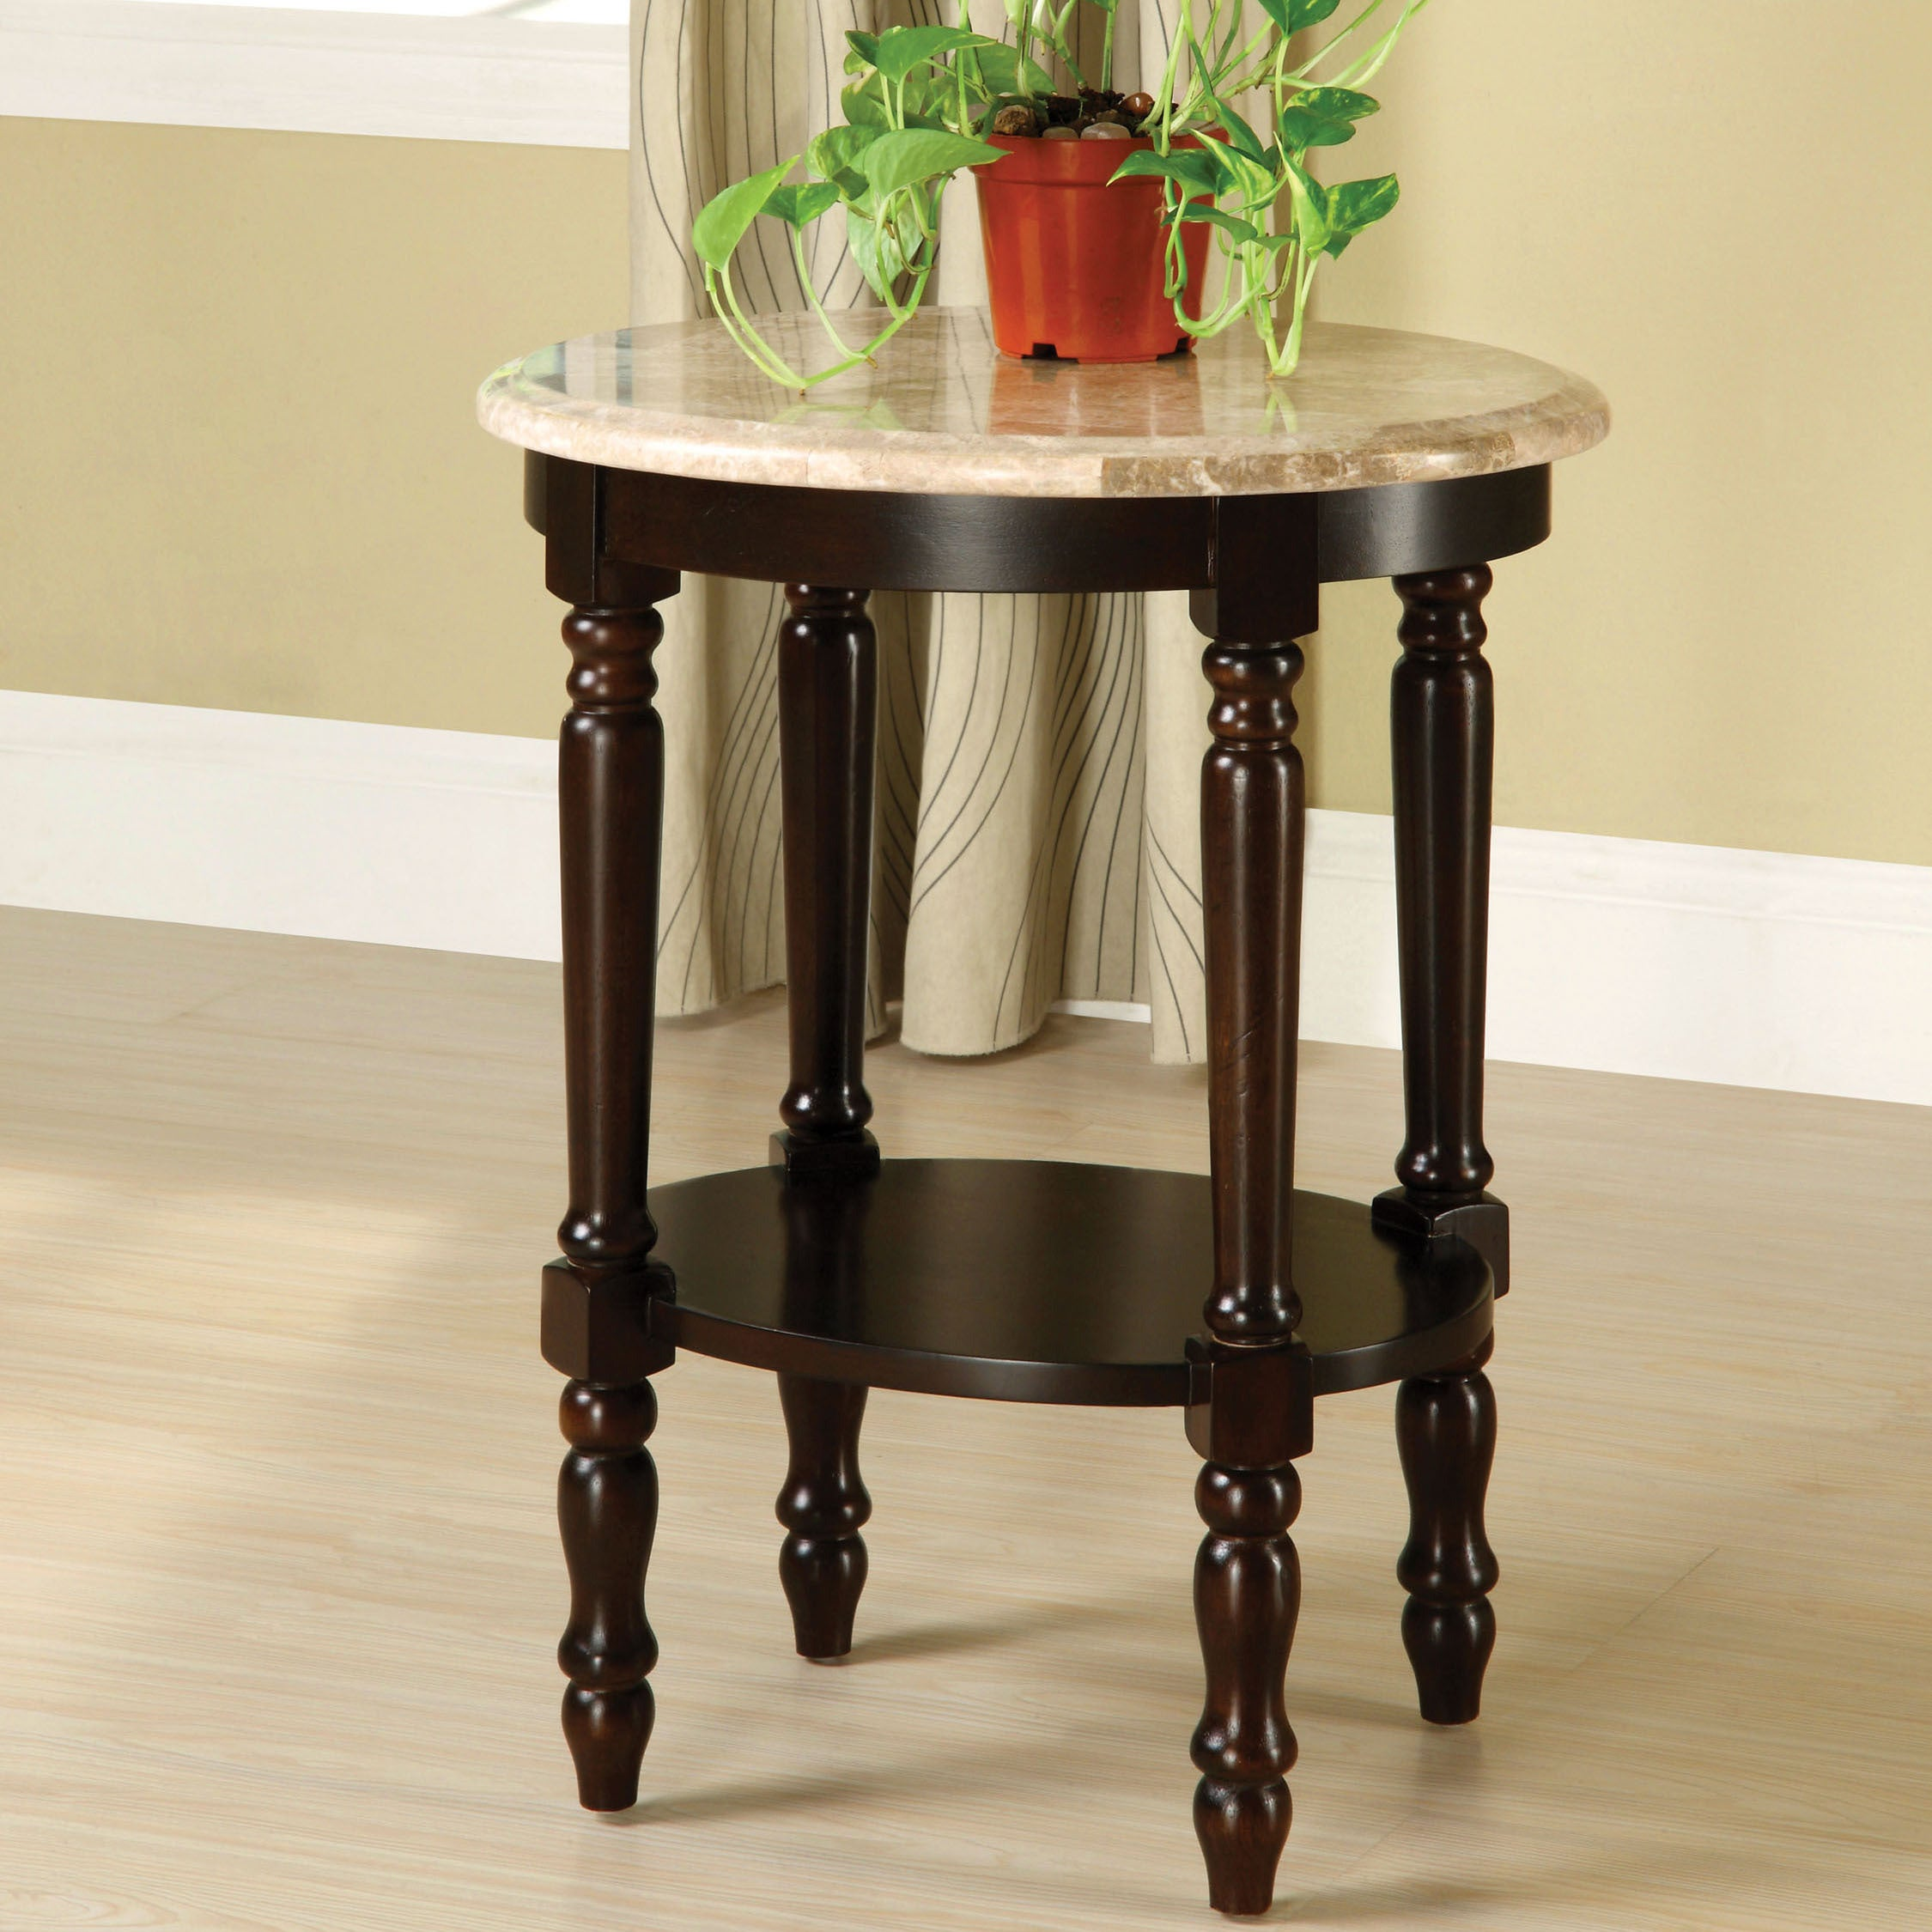 Shop copper grove angelina classic marble oval top side table free shipping on orders over 45 overstock com 9215768